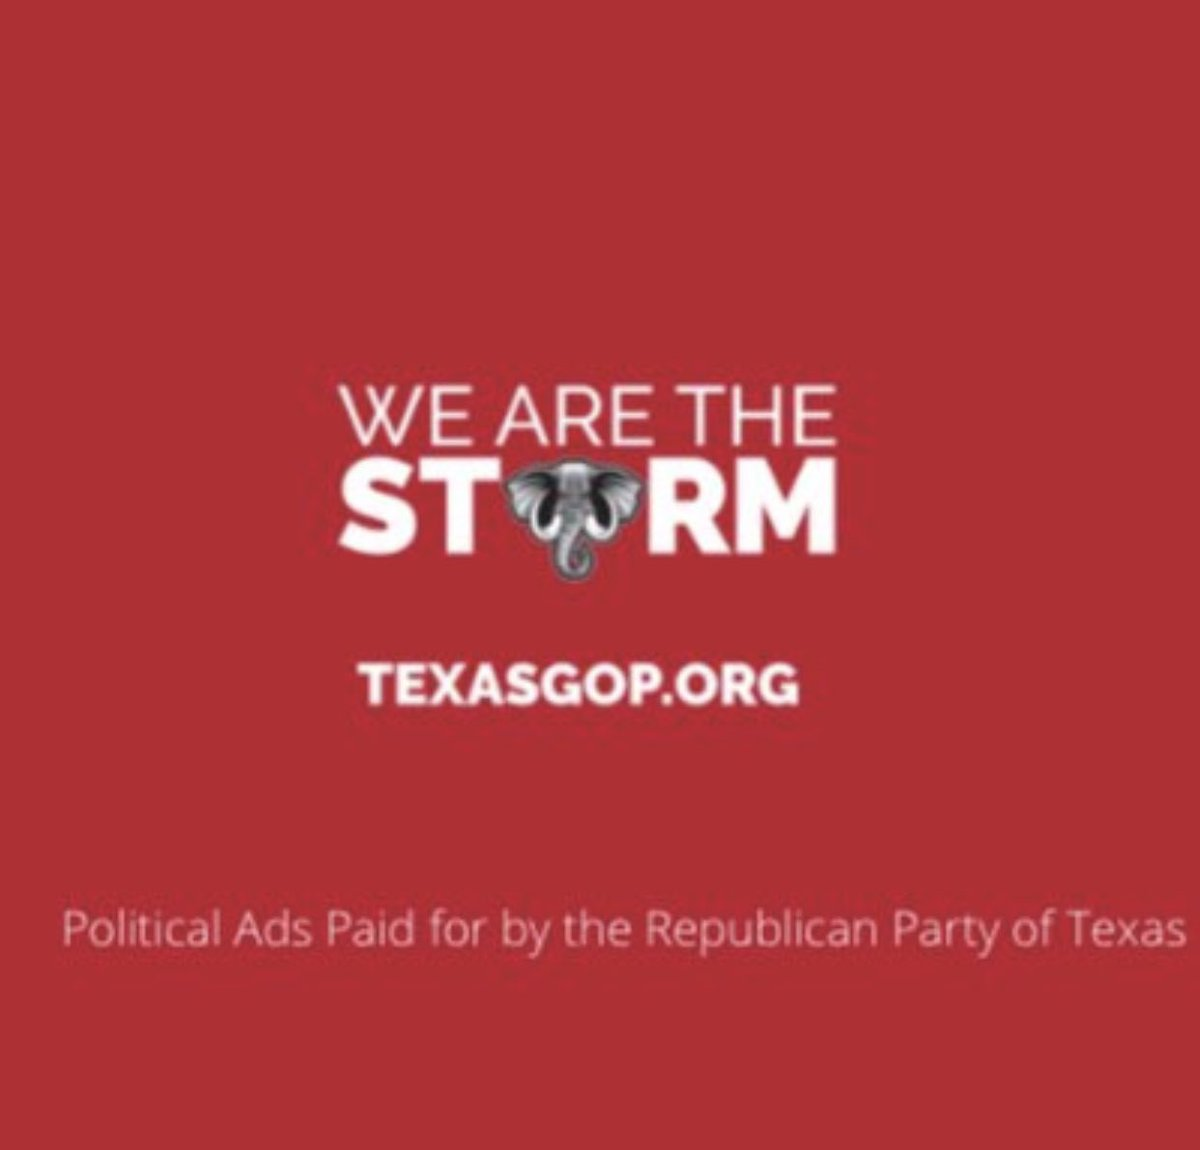 RT @MollyJongFast: The @TexasGOP went full Qanon, this strikes me as bad https://t.co/aLd2nGxJum